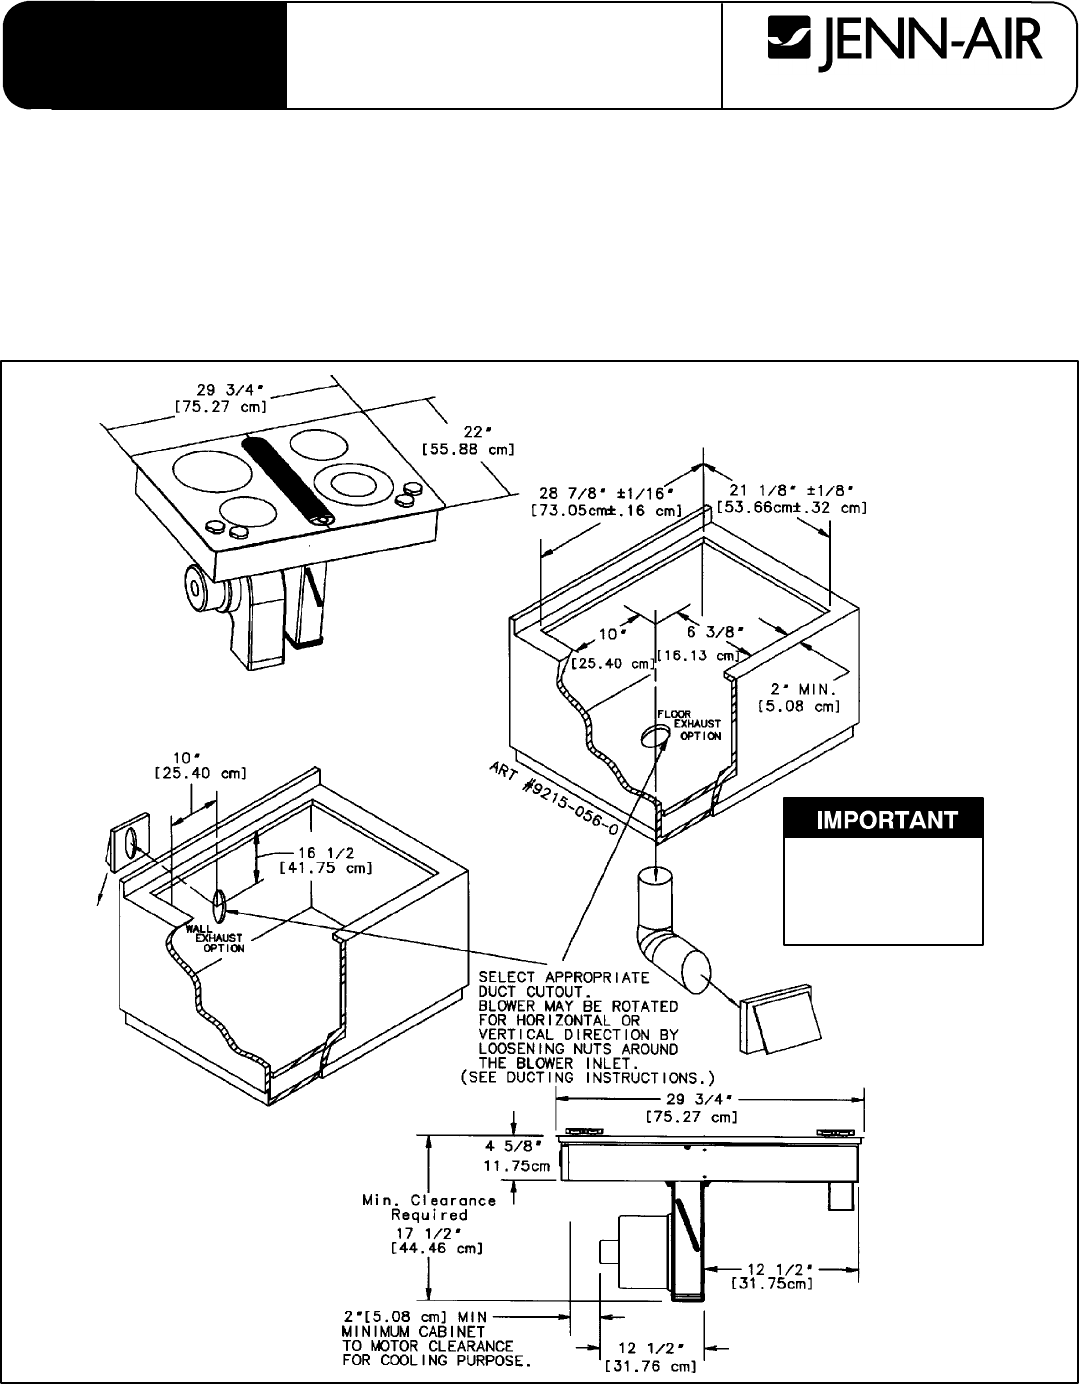 Jenn Air Cooktop Jed8430 User Guide Manualsonlinecom Electric Stove Wiring Diagram Installer Save For The Local Electrical Inspectors Use